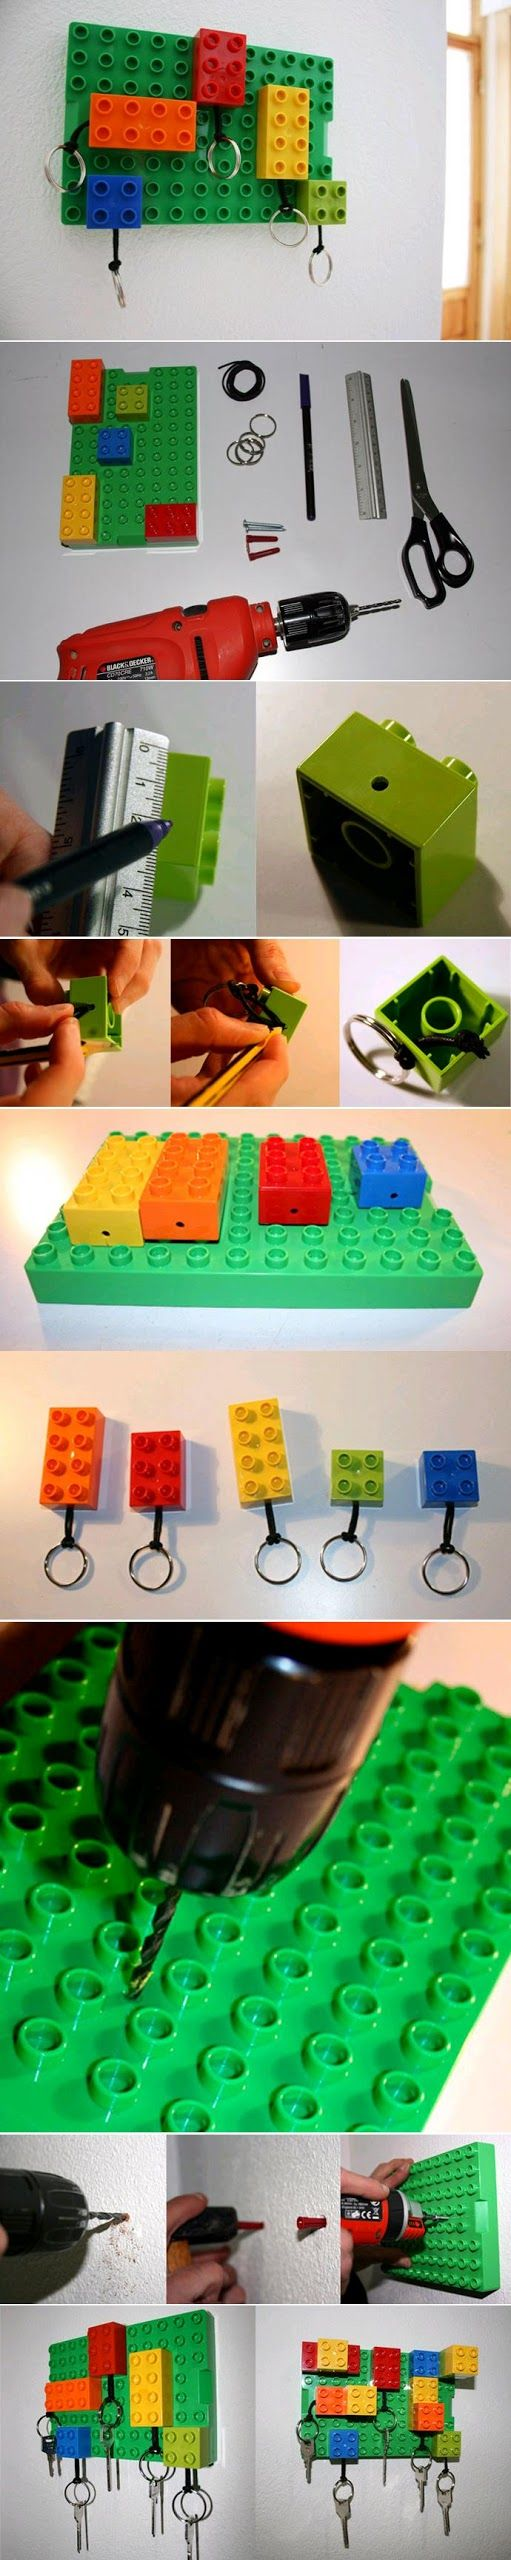 diy lego key hanger d i y pinterest porte cl lego et cl s. Black Bedroom Furniture Sets. Home Design Ideas